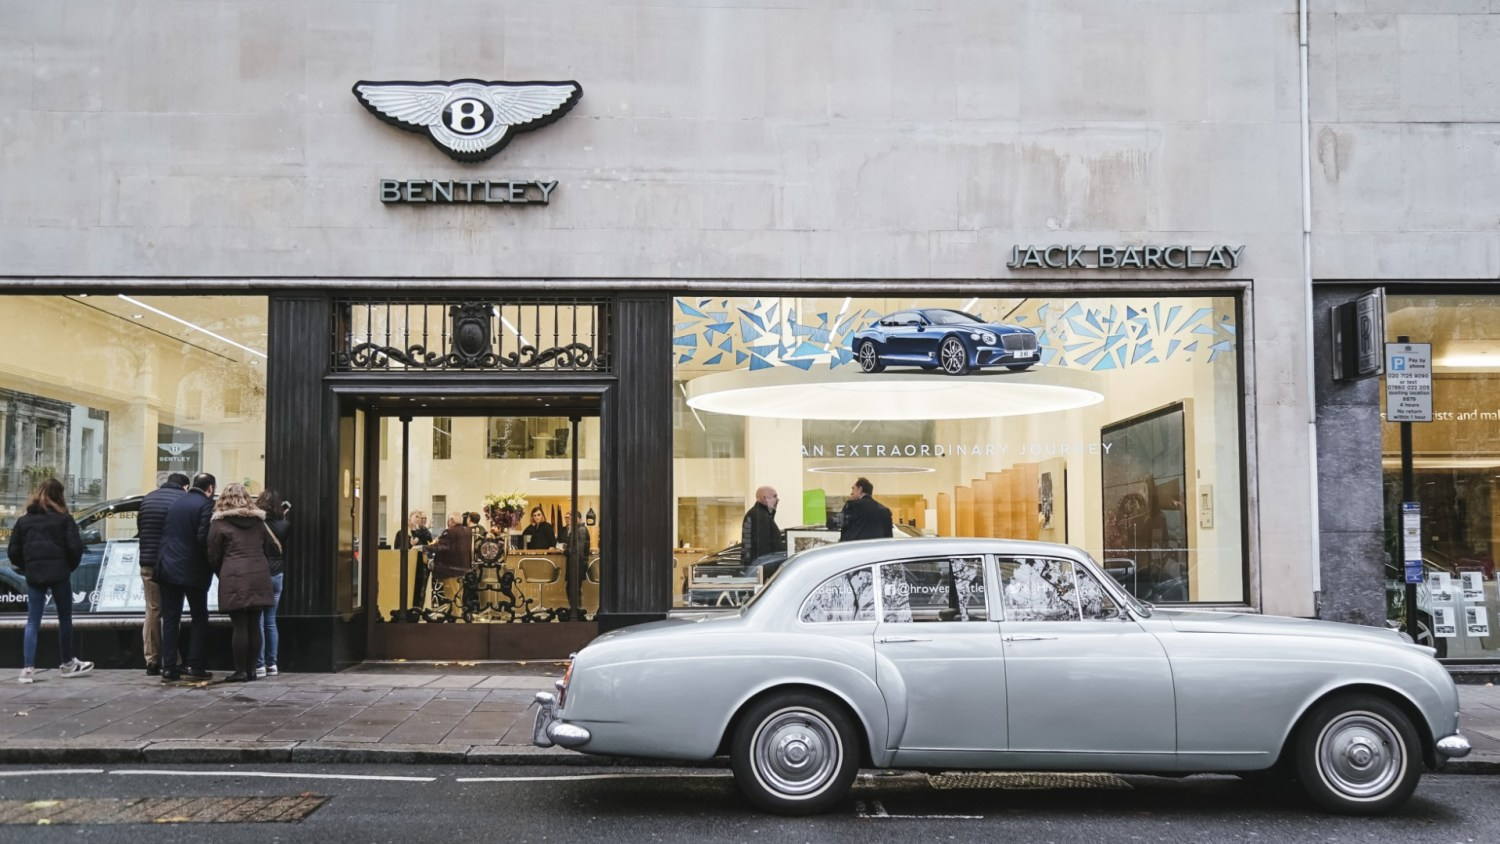 Bond's Bentley heading to Jack Barclay Bentley